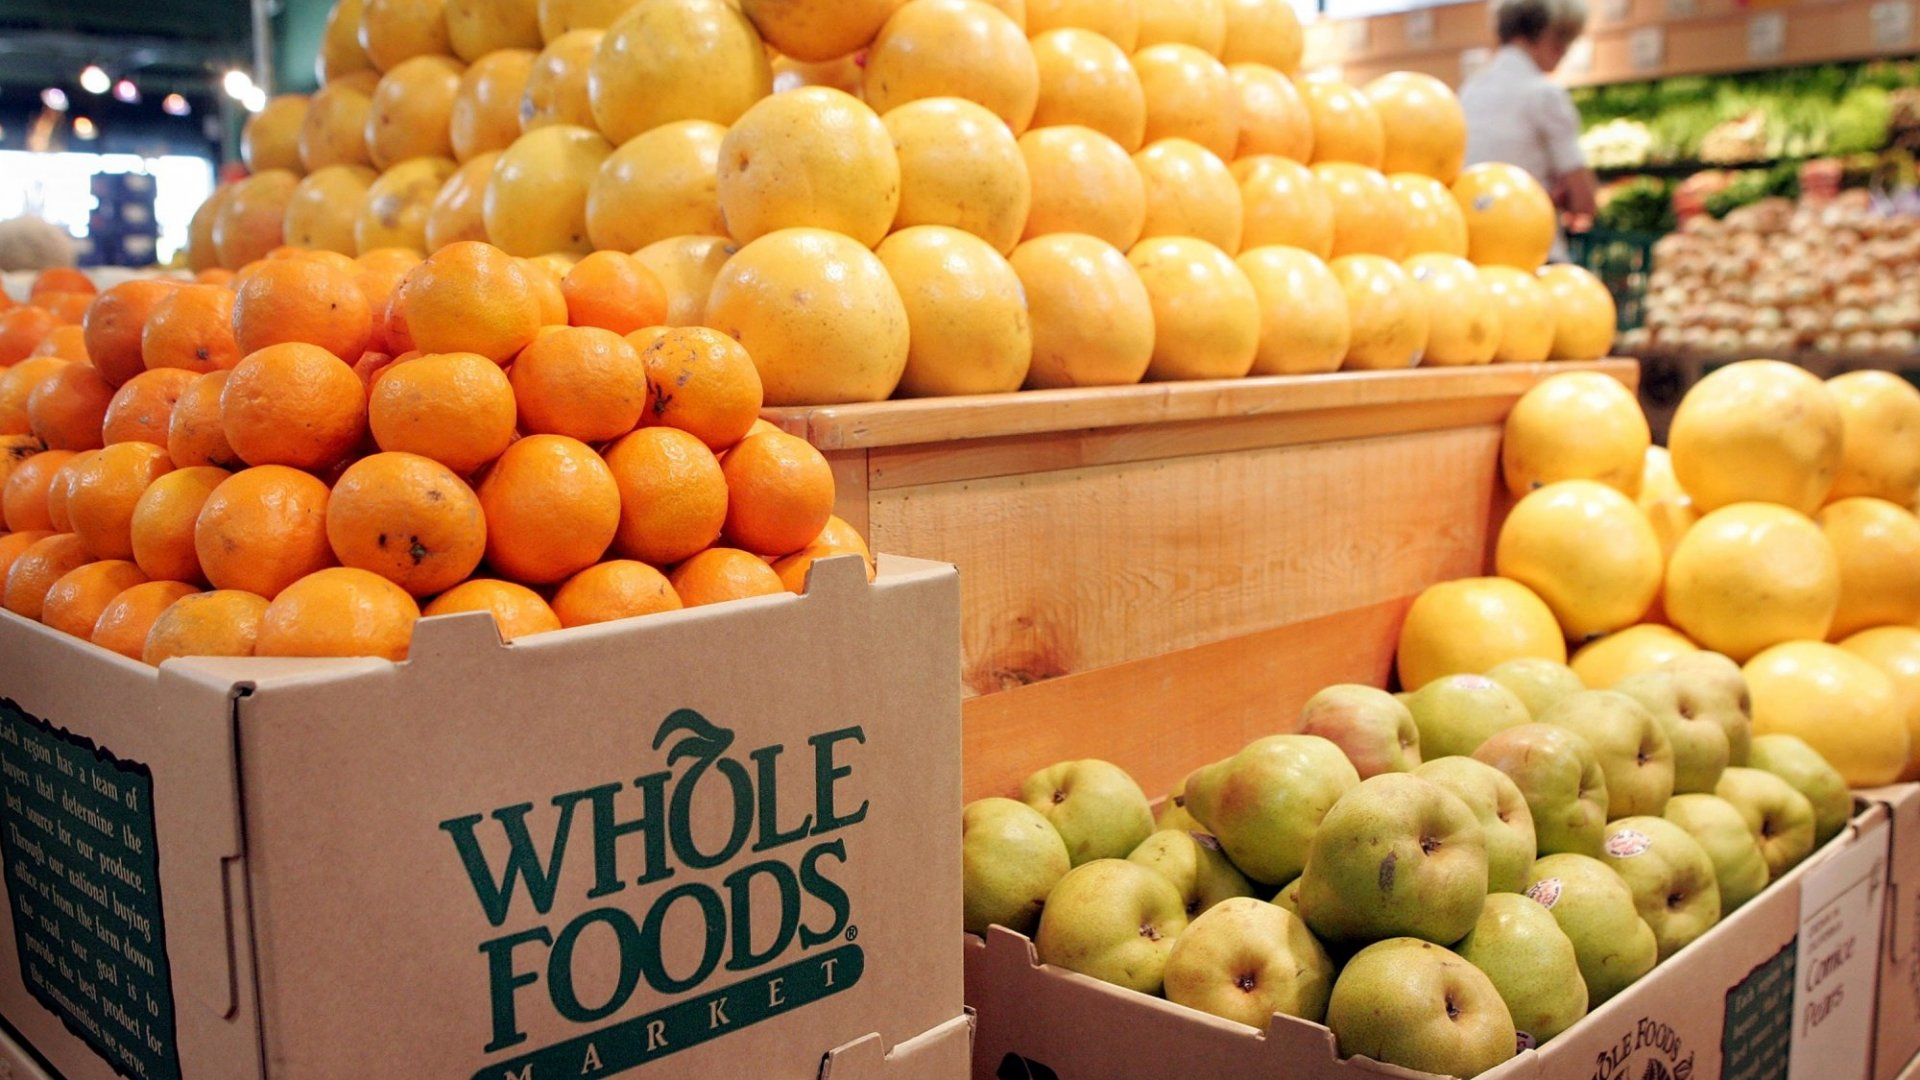 Amazon Buys Whole Foods for $13.7 Billion: Does This Mean the 'Greedy Bastards' Won?